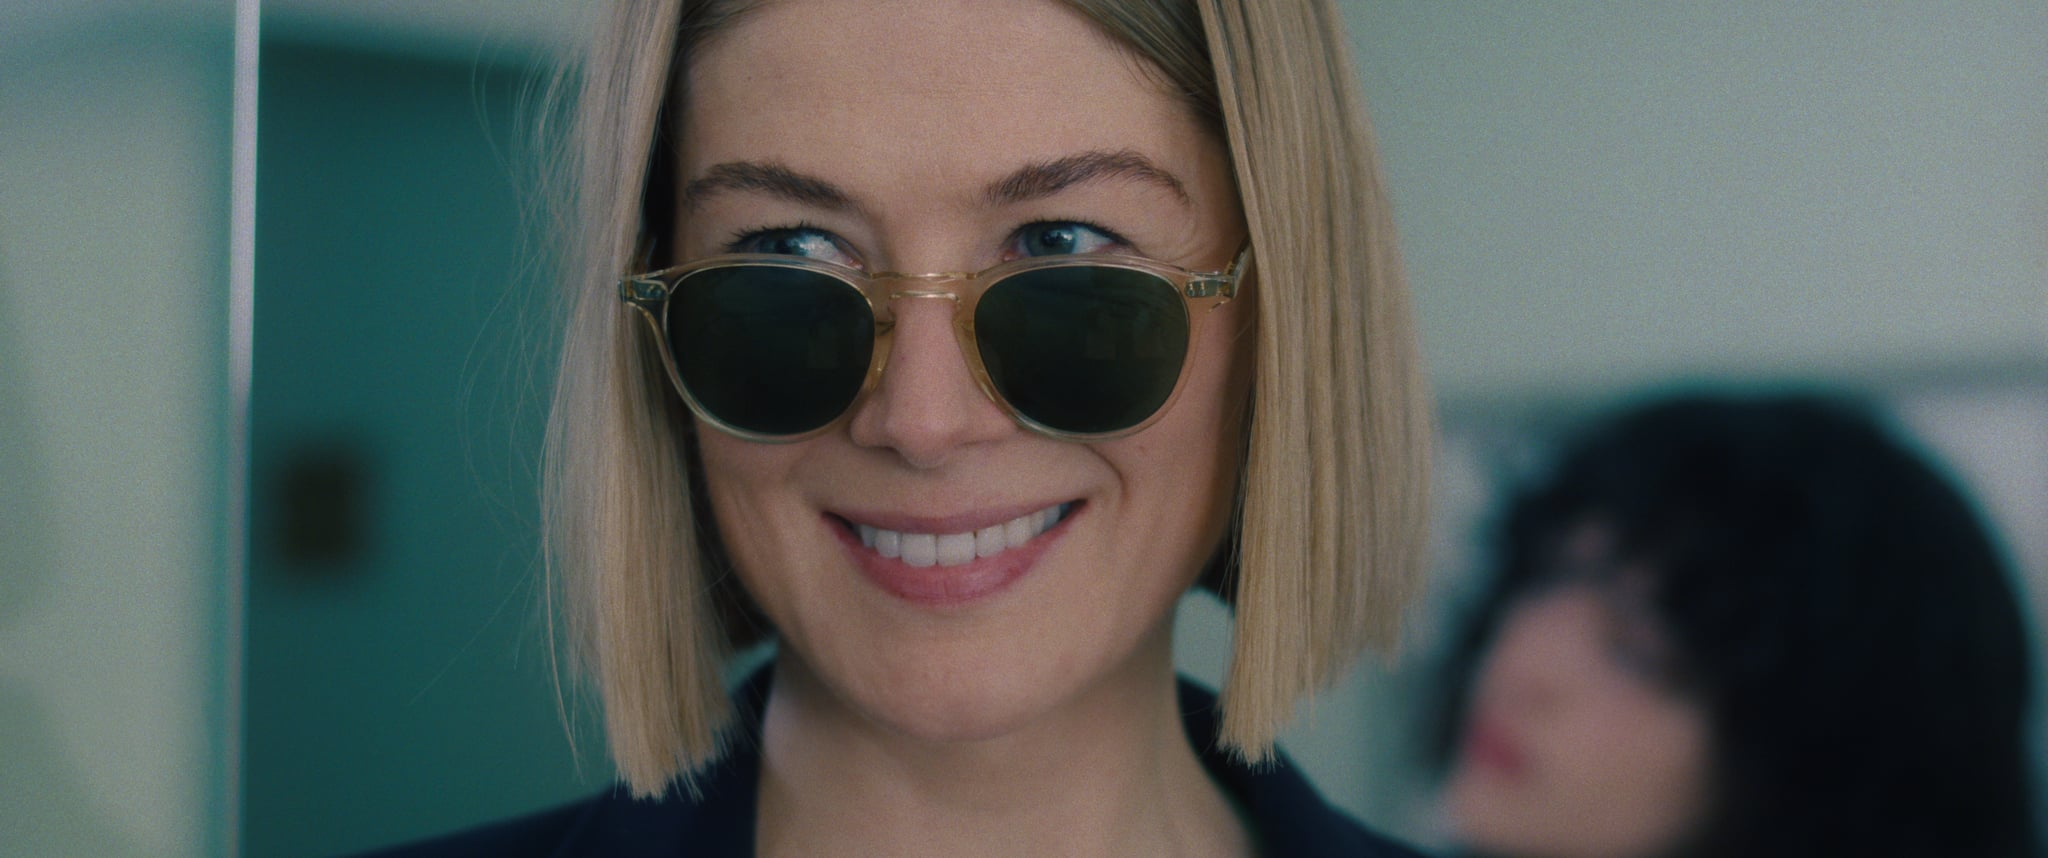 Why Strong Women Wear Blunt Bob Haircuts in Thriller Movies 4